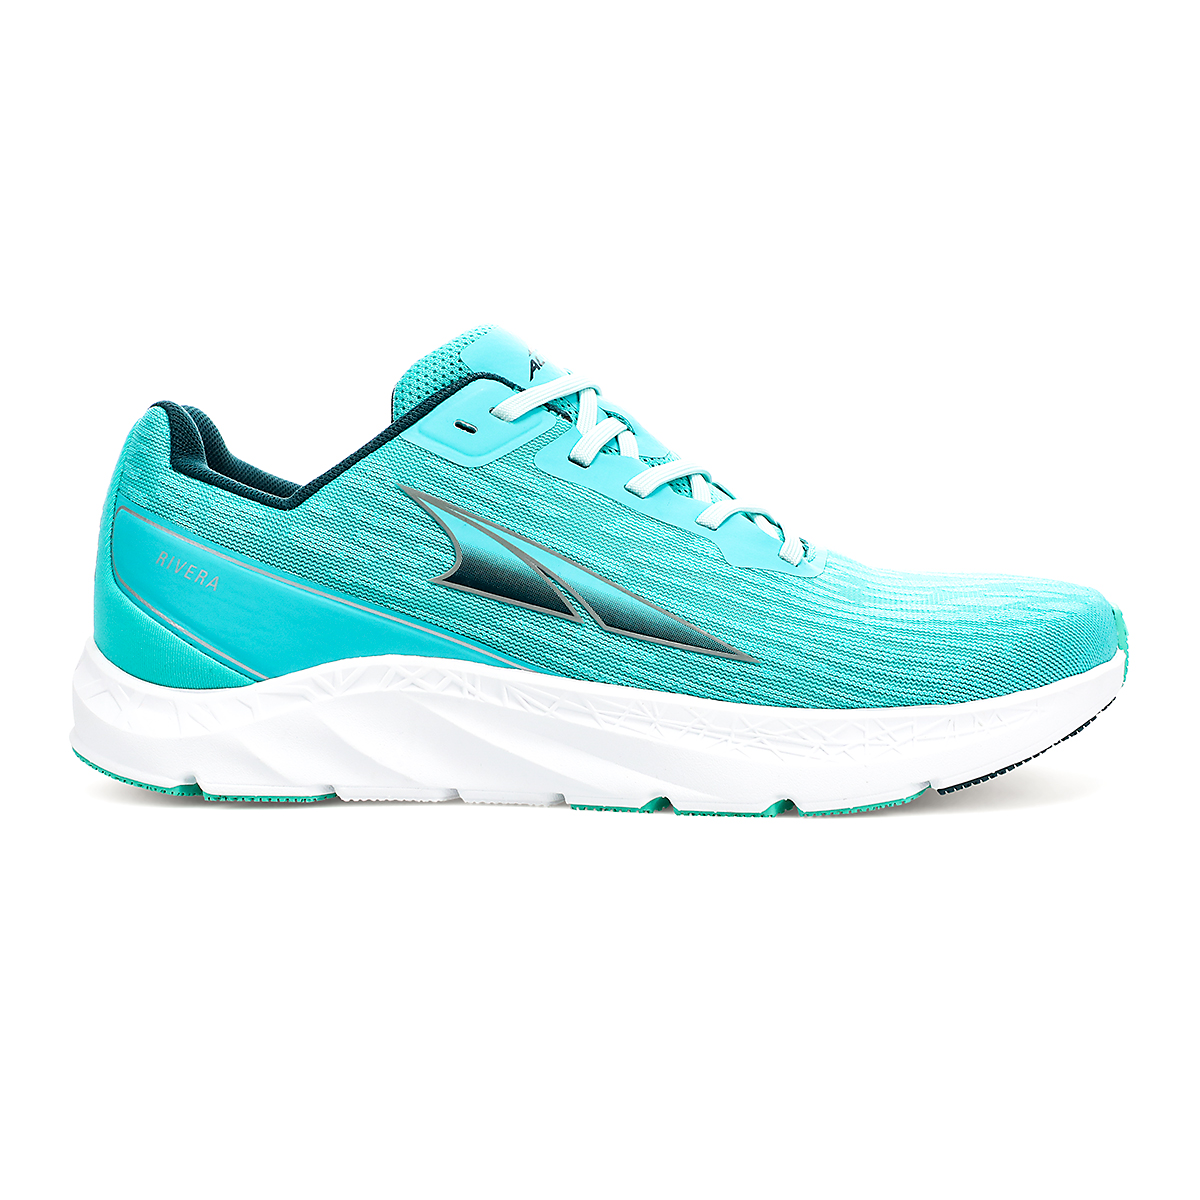 Women's Altra Rivera Running Shoe - Color: Teal/Green - Size: 5.5 - Width: Regular, Teal/Green, large, image 1